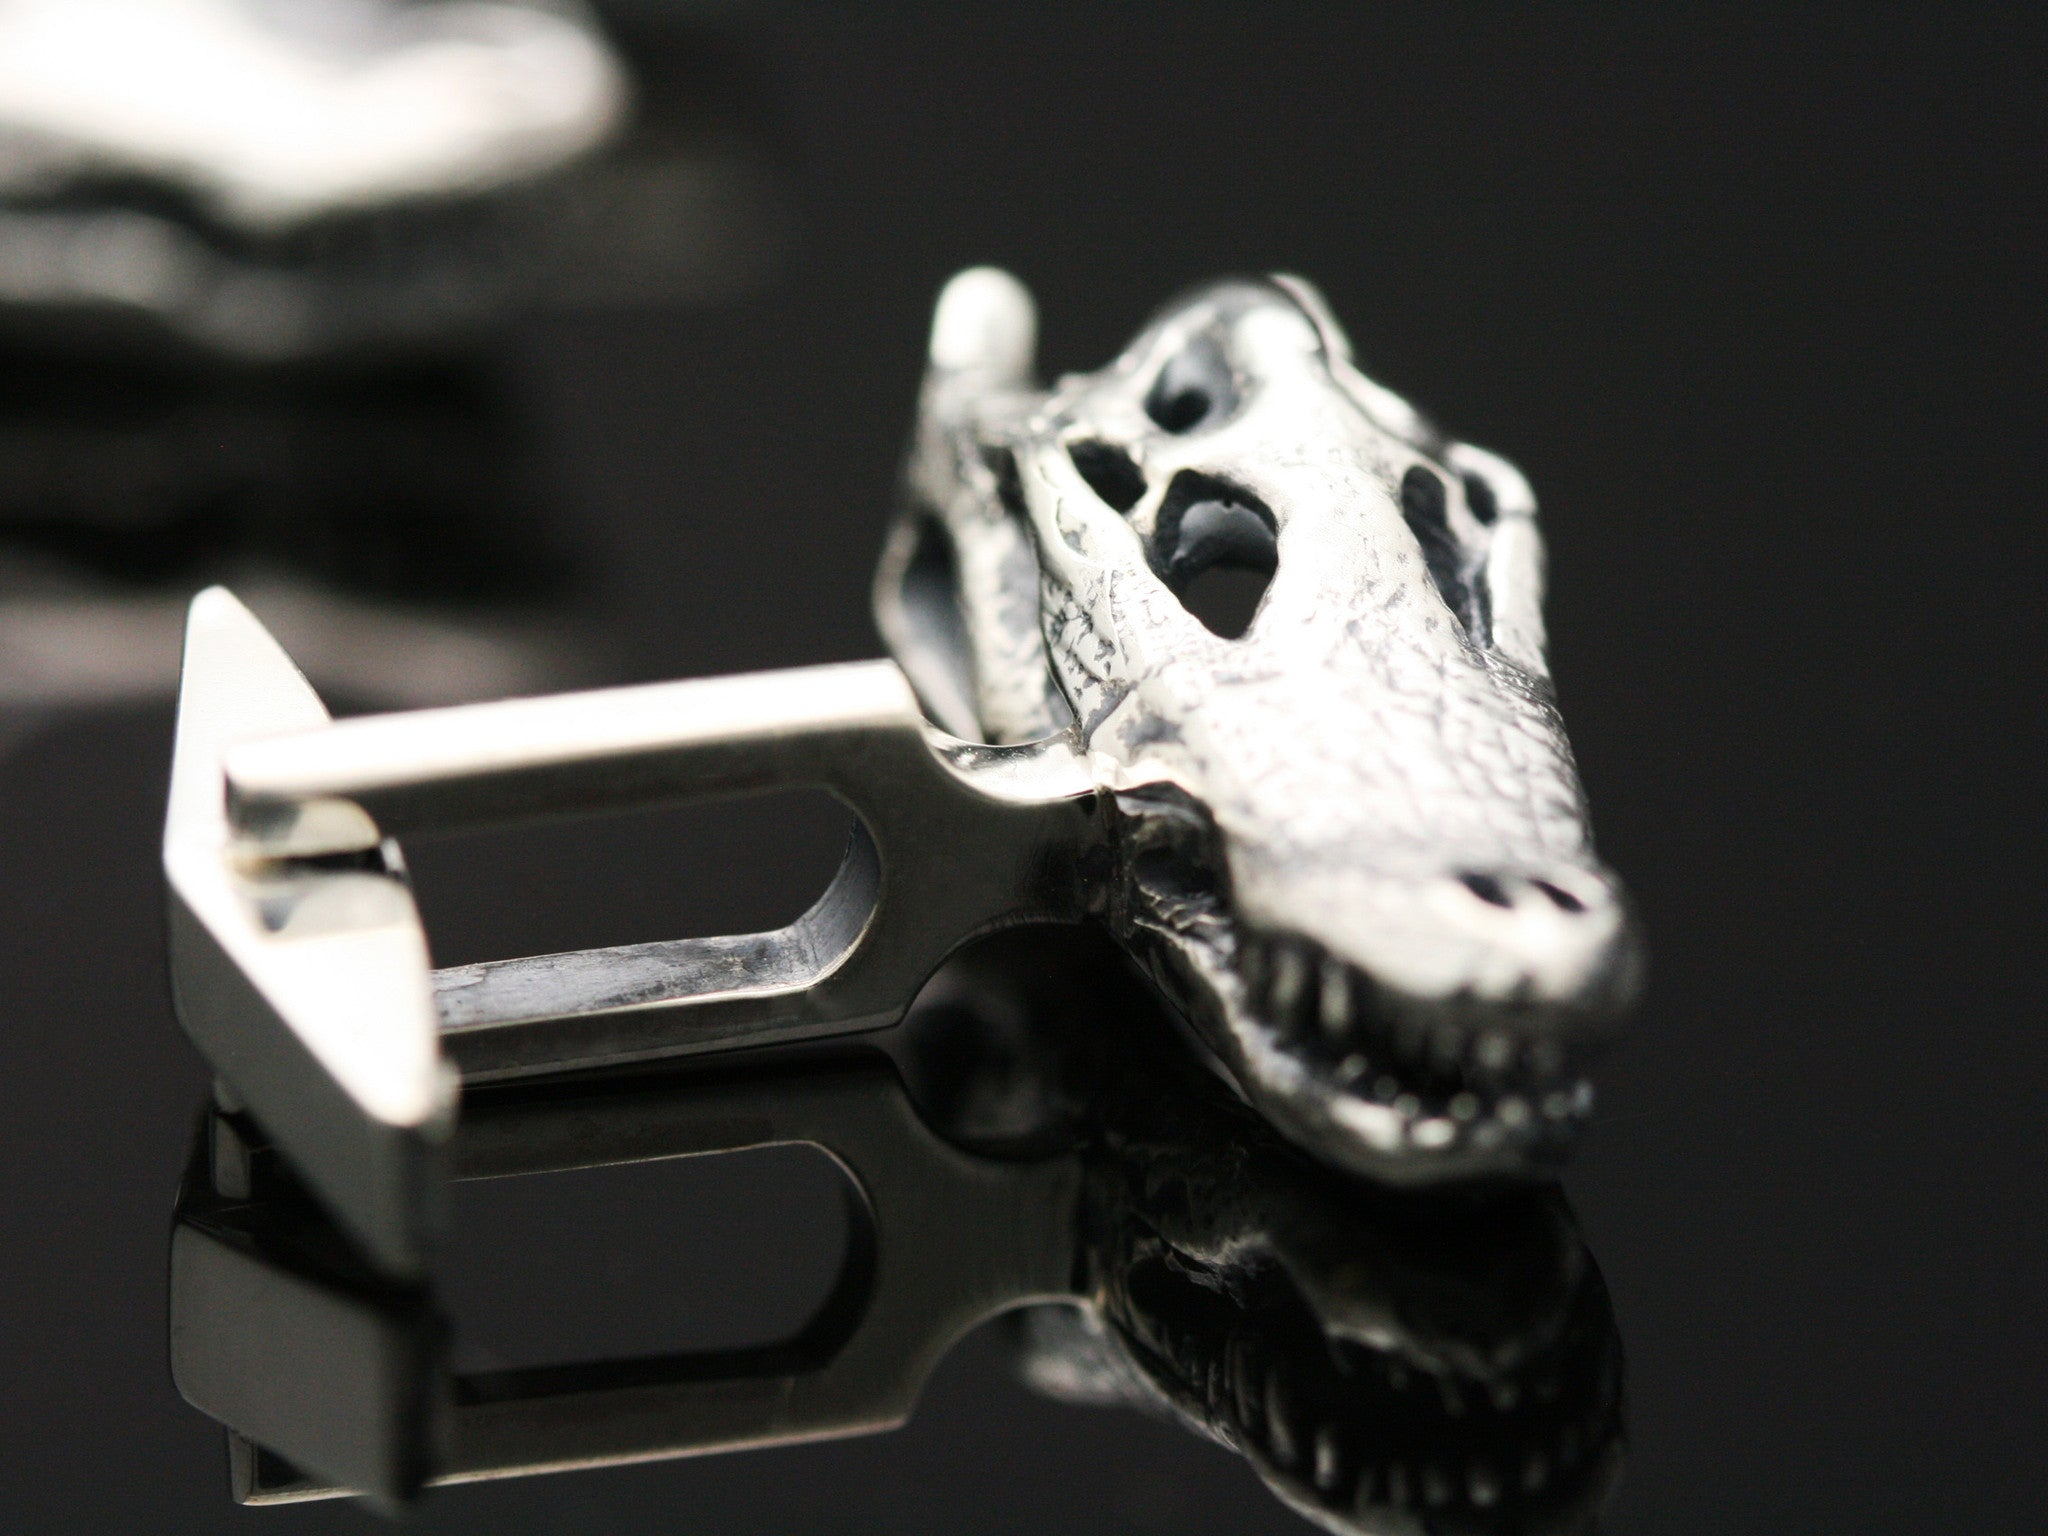 The Crocodile Skull Cufflinks